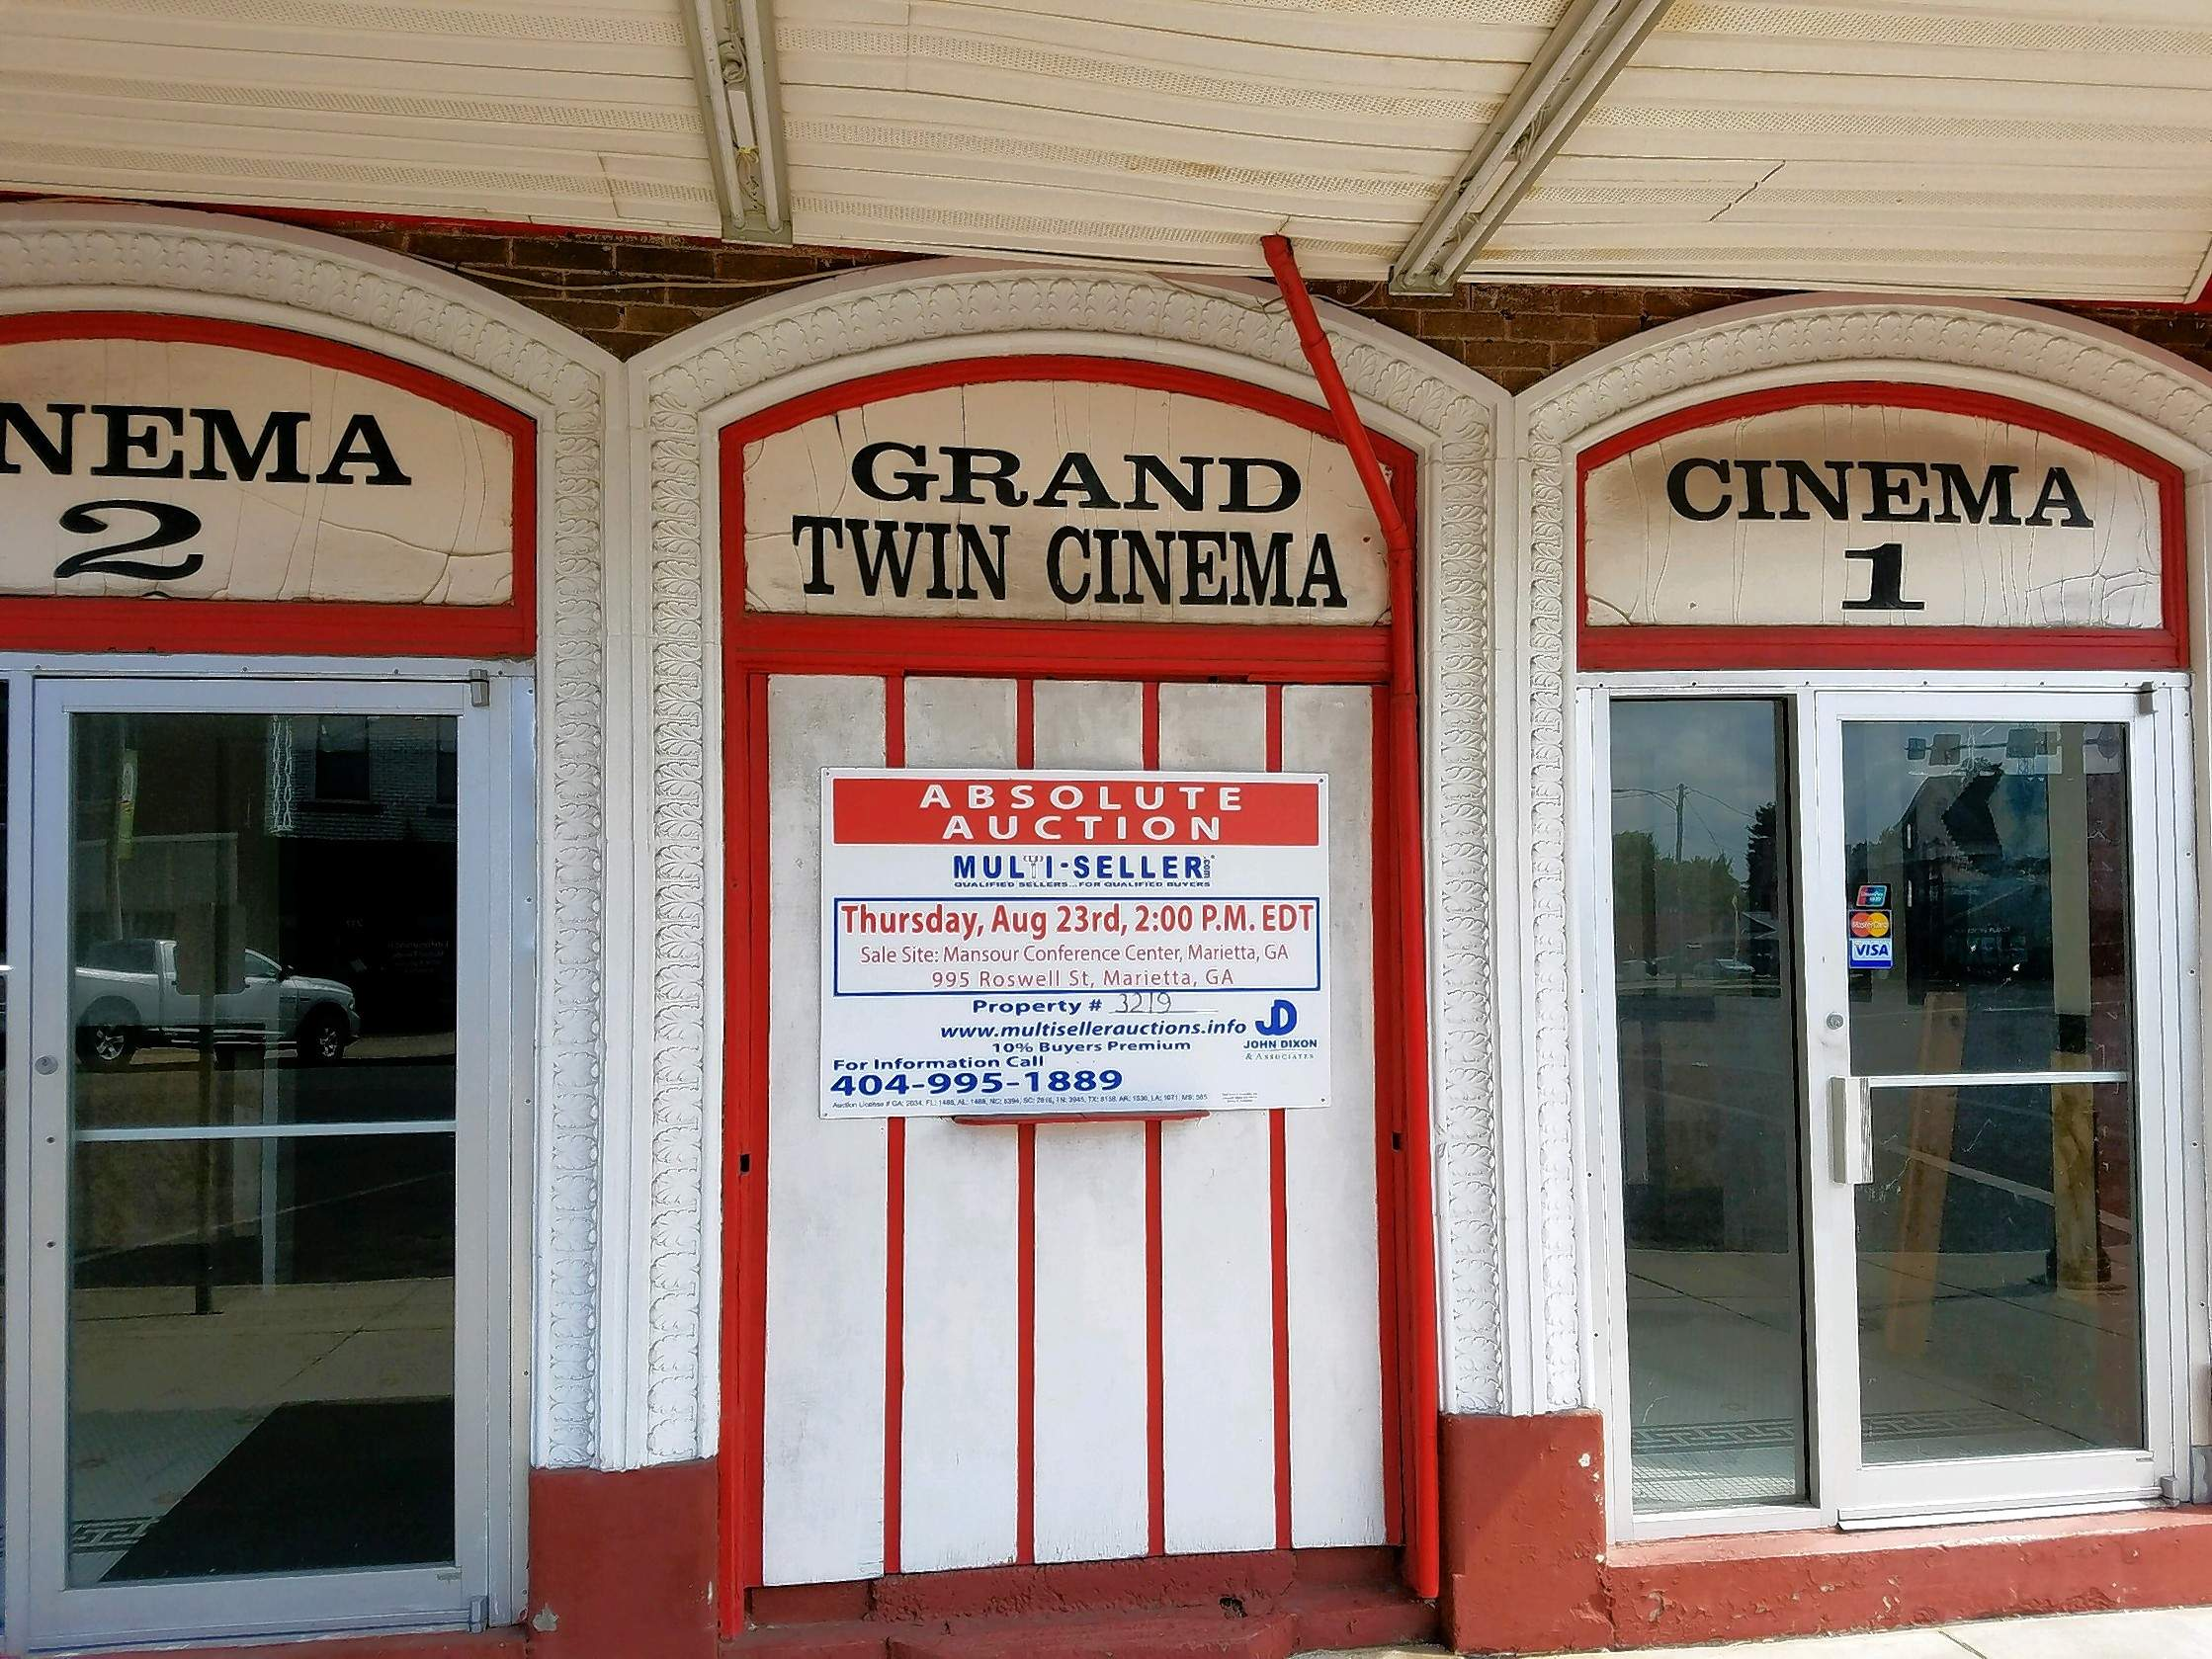 An auction sign went up this week on The Grand Theater, a Du Quoin landmark for over a century.